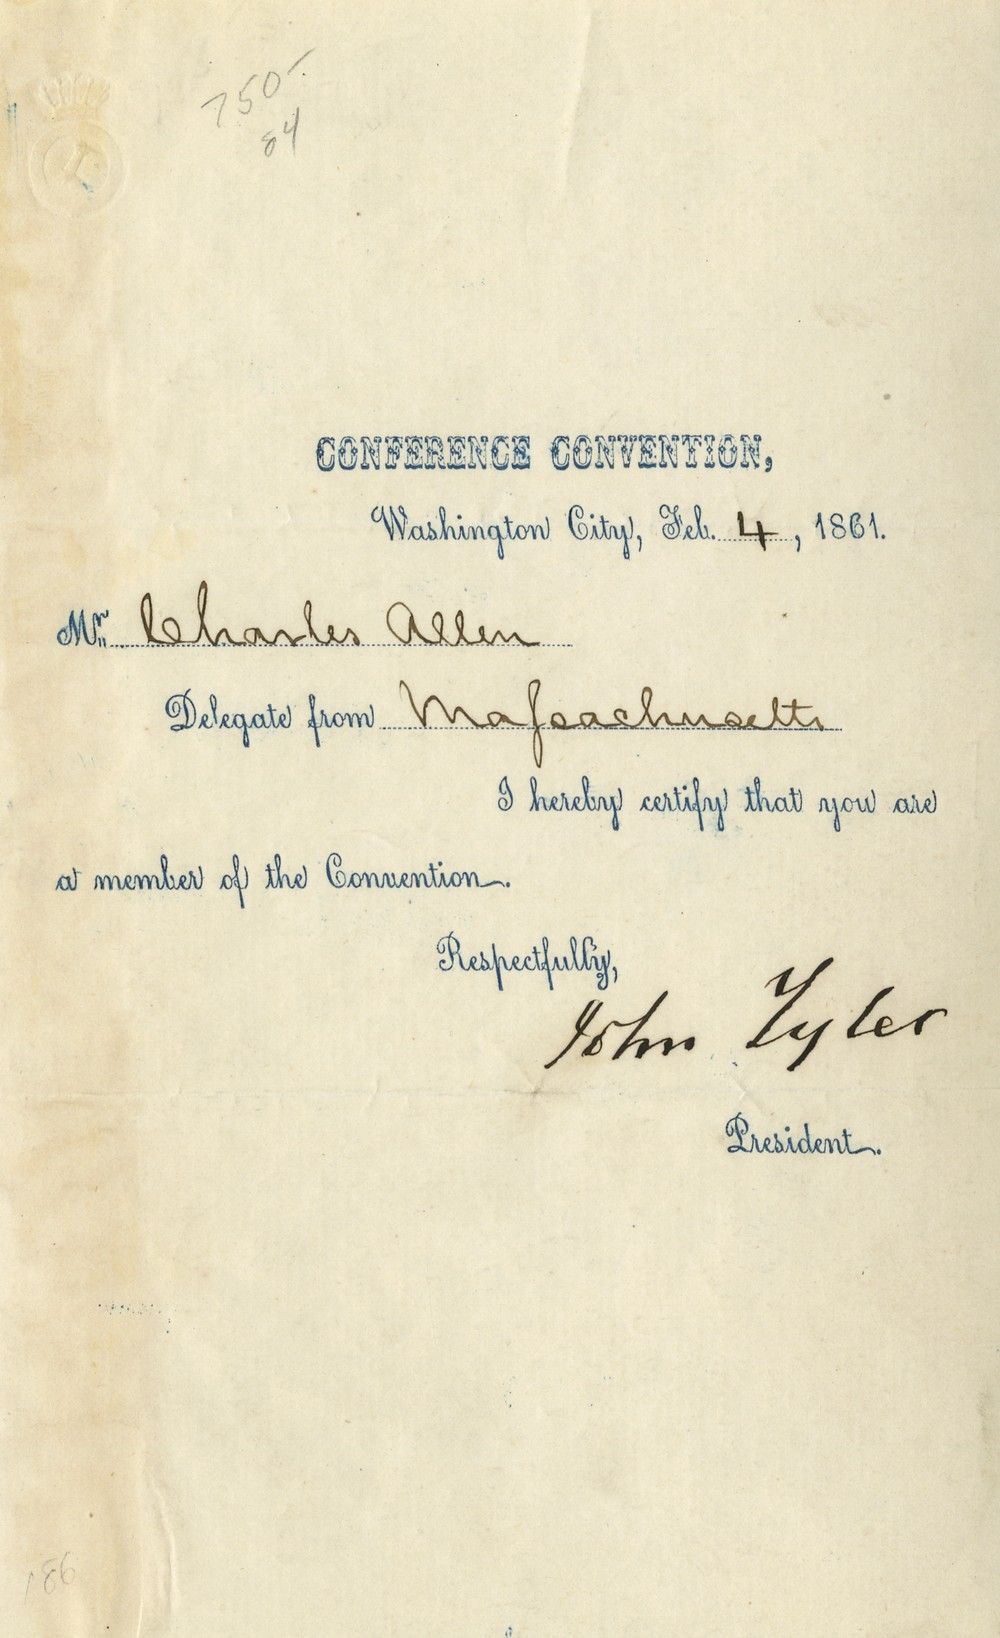 John Tyler, as President of the 1861 Washington Peace Convention, Certifies a Delegate From Massachusetts